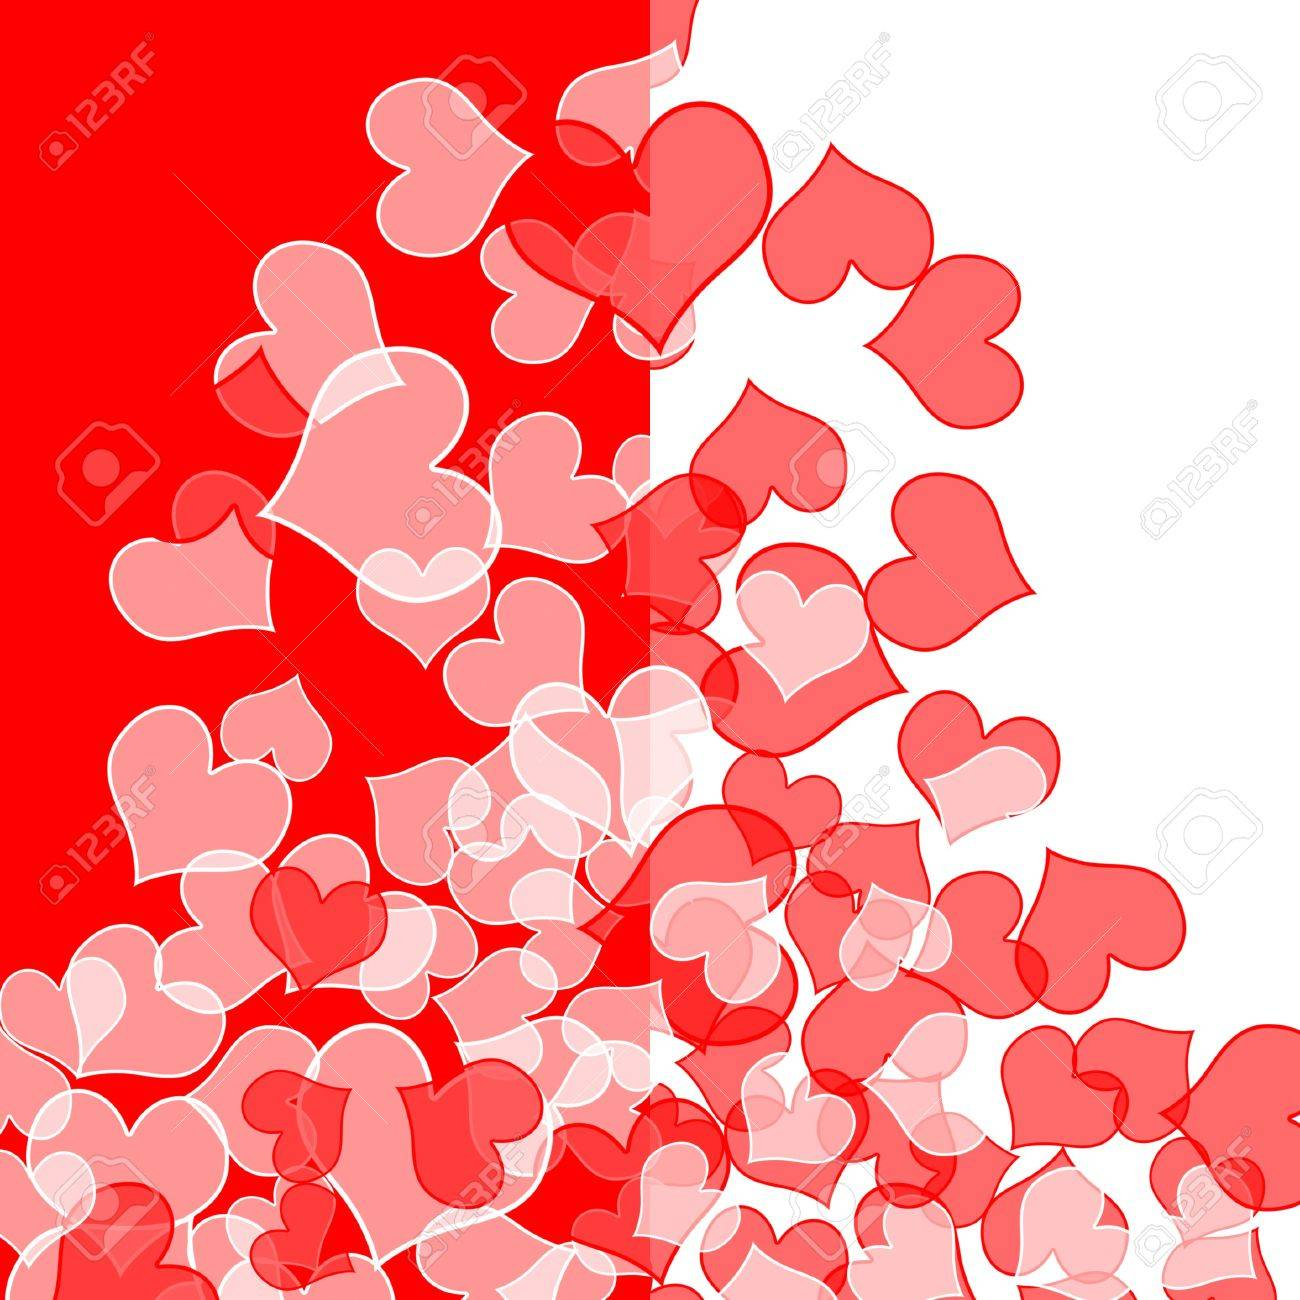 Different Shades Of Red Background With Hearts Of Different Shades Of Red Stock Photo